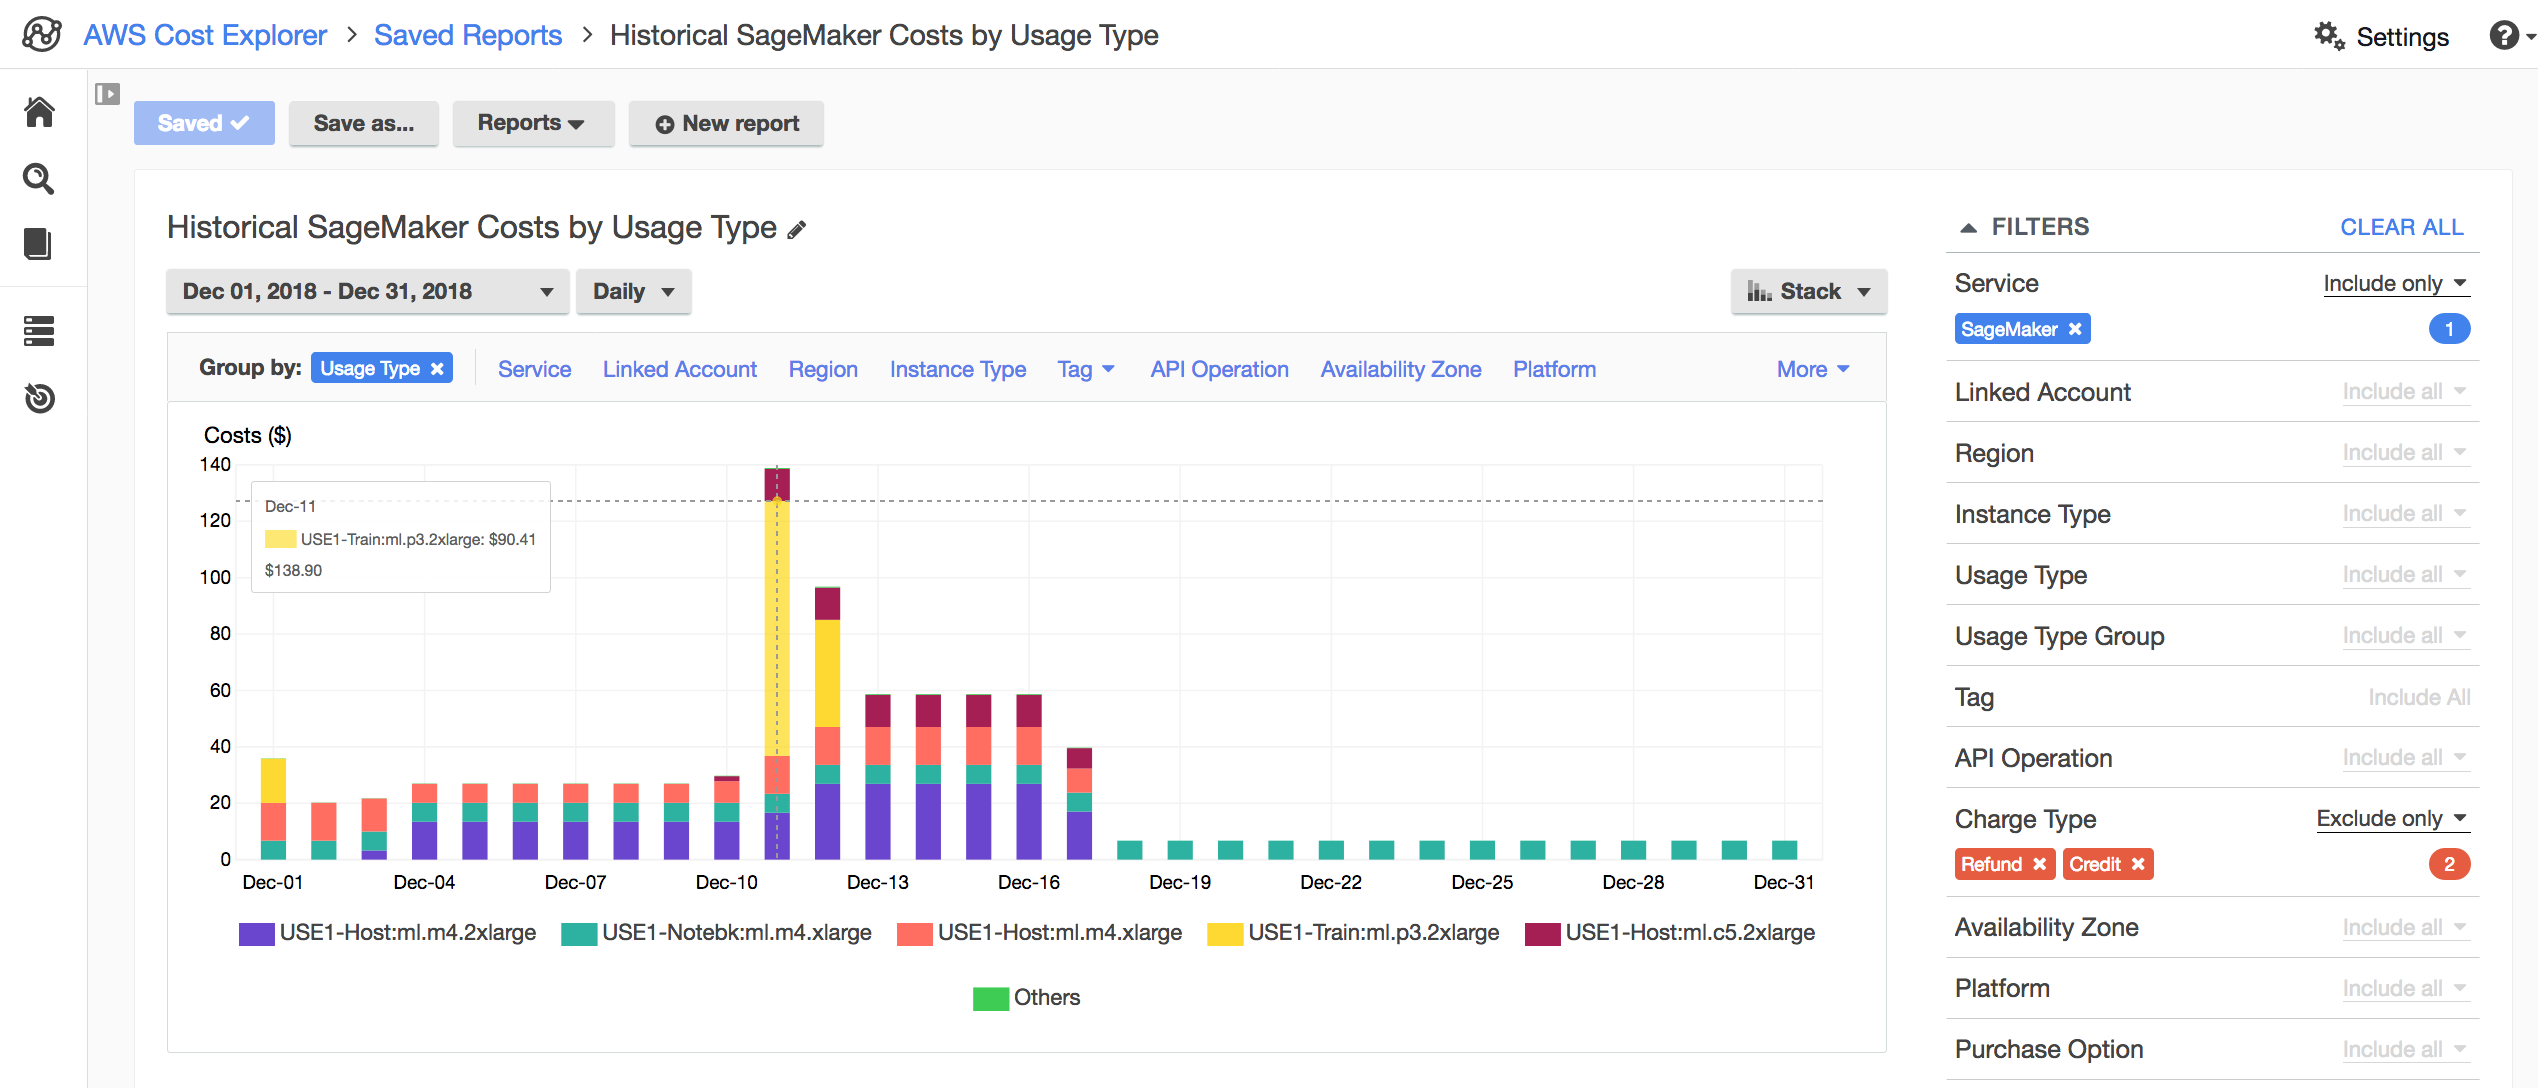 Historical SageMaker Costs by Usage Type